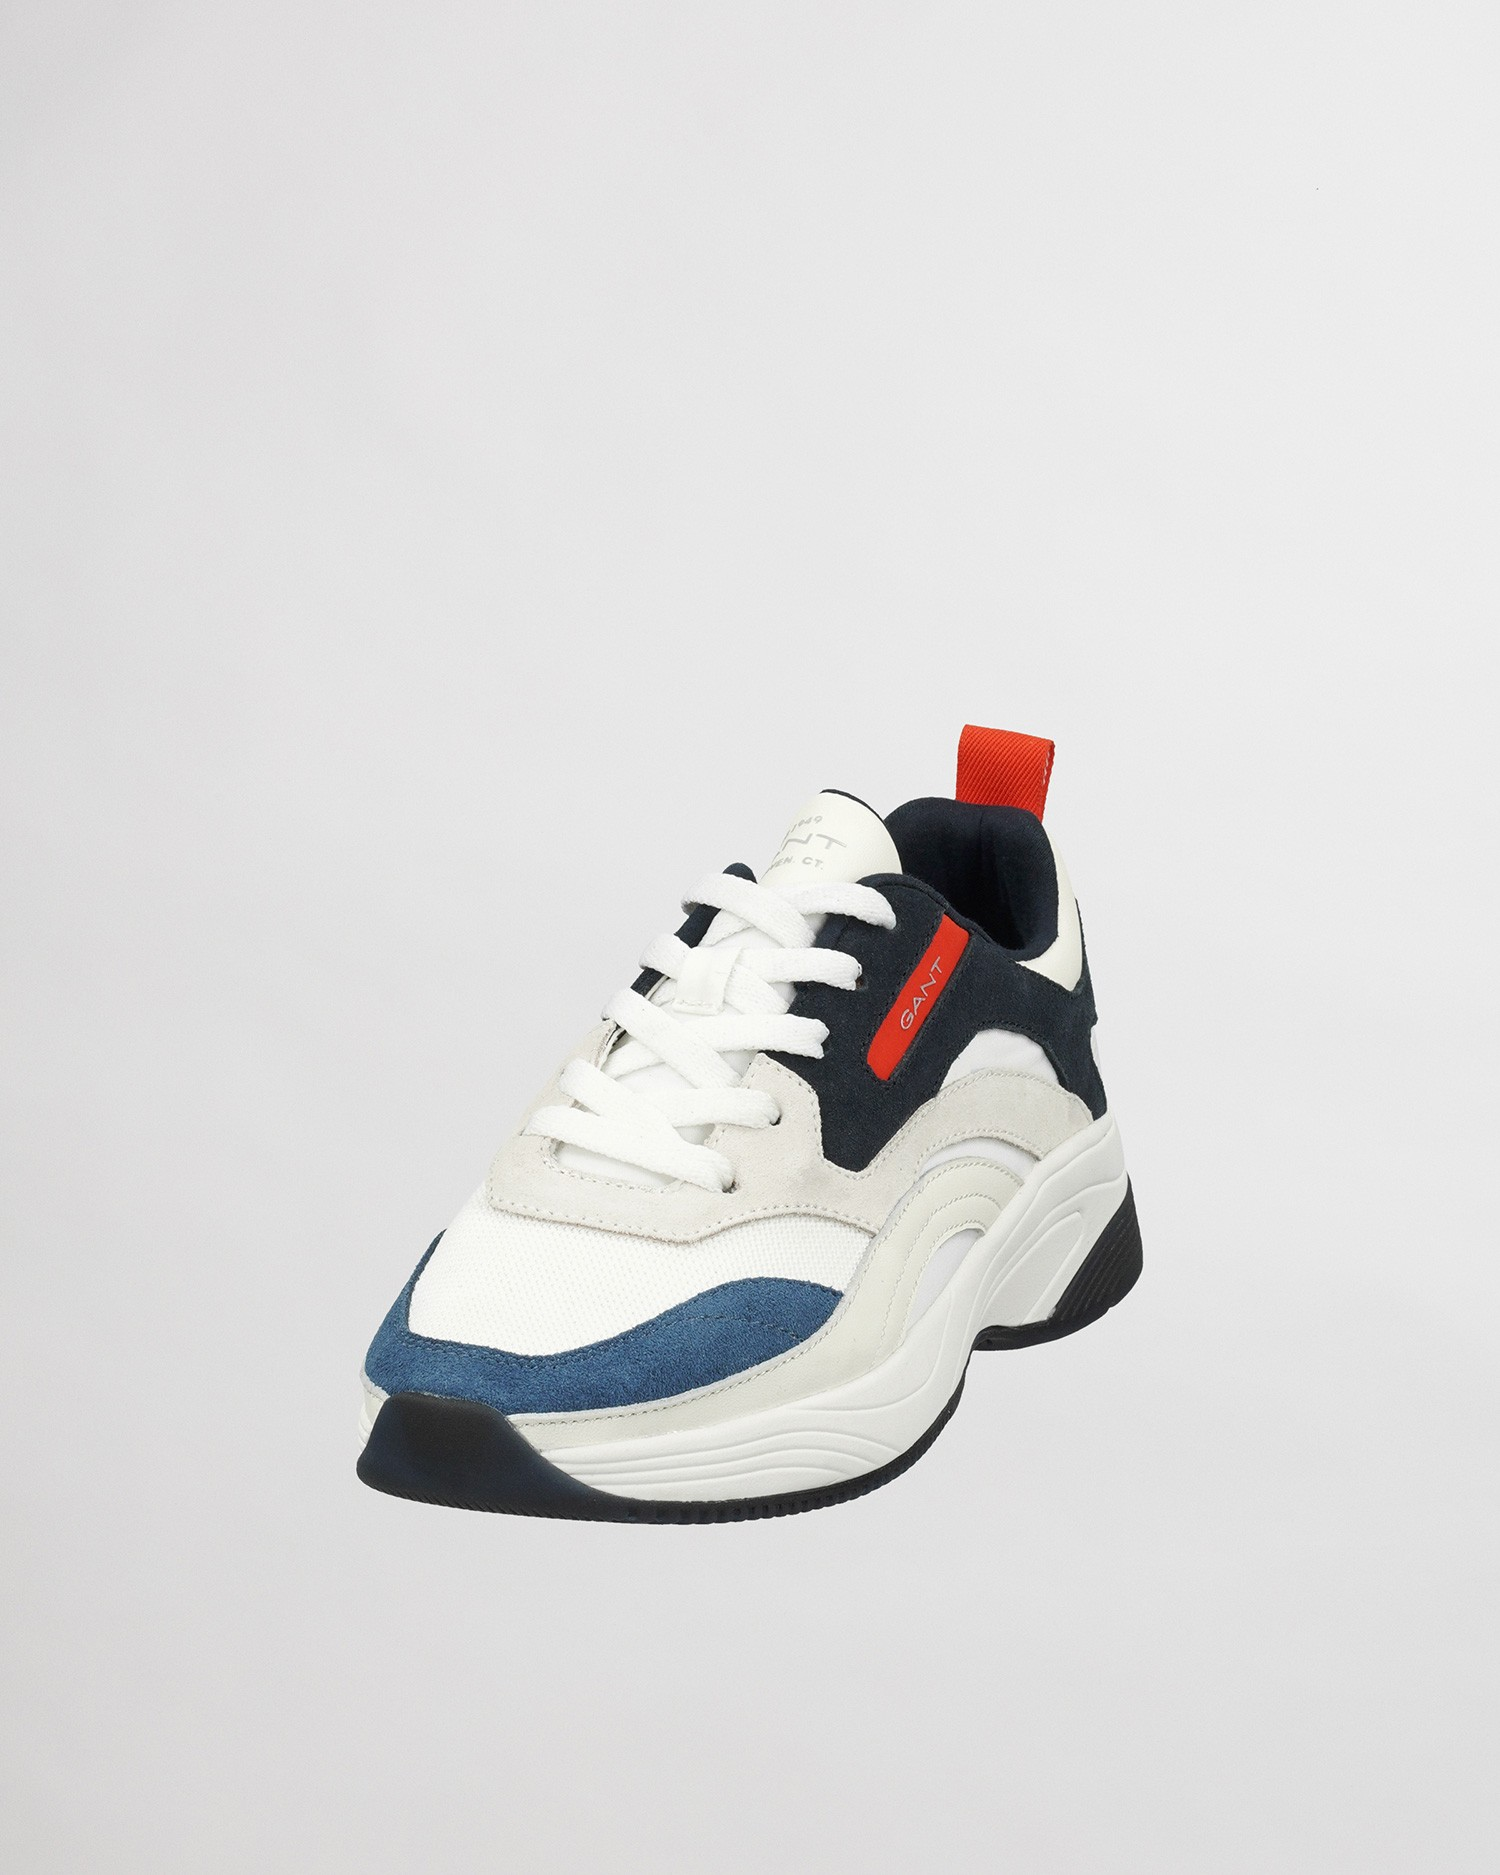 GANT Women's Shoes - 22533552